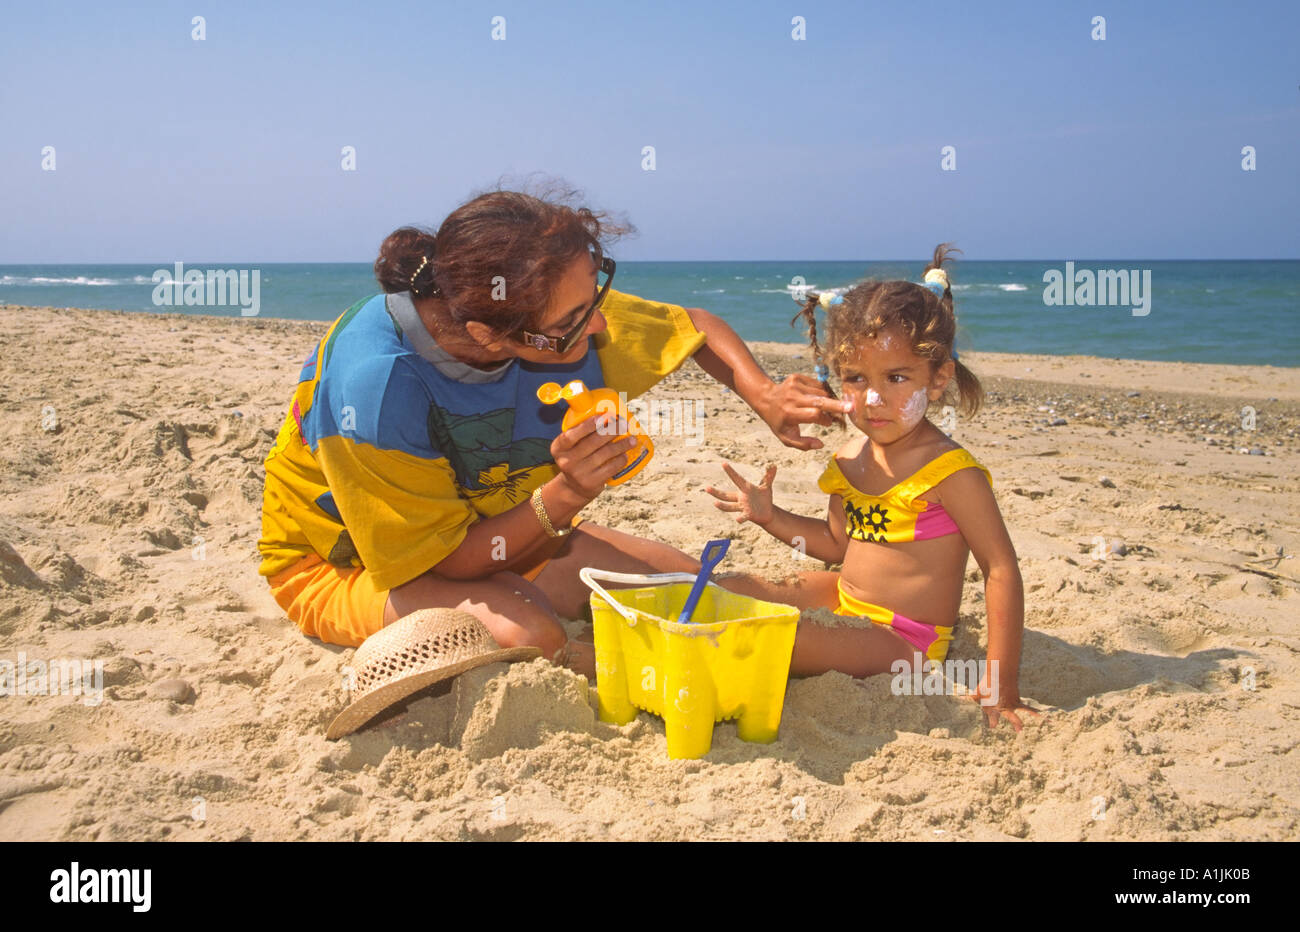 Mother Applying Suncream to Face of Child on Beach - Stock Image